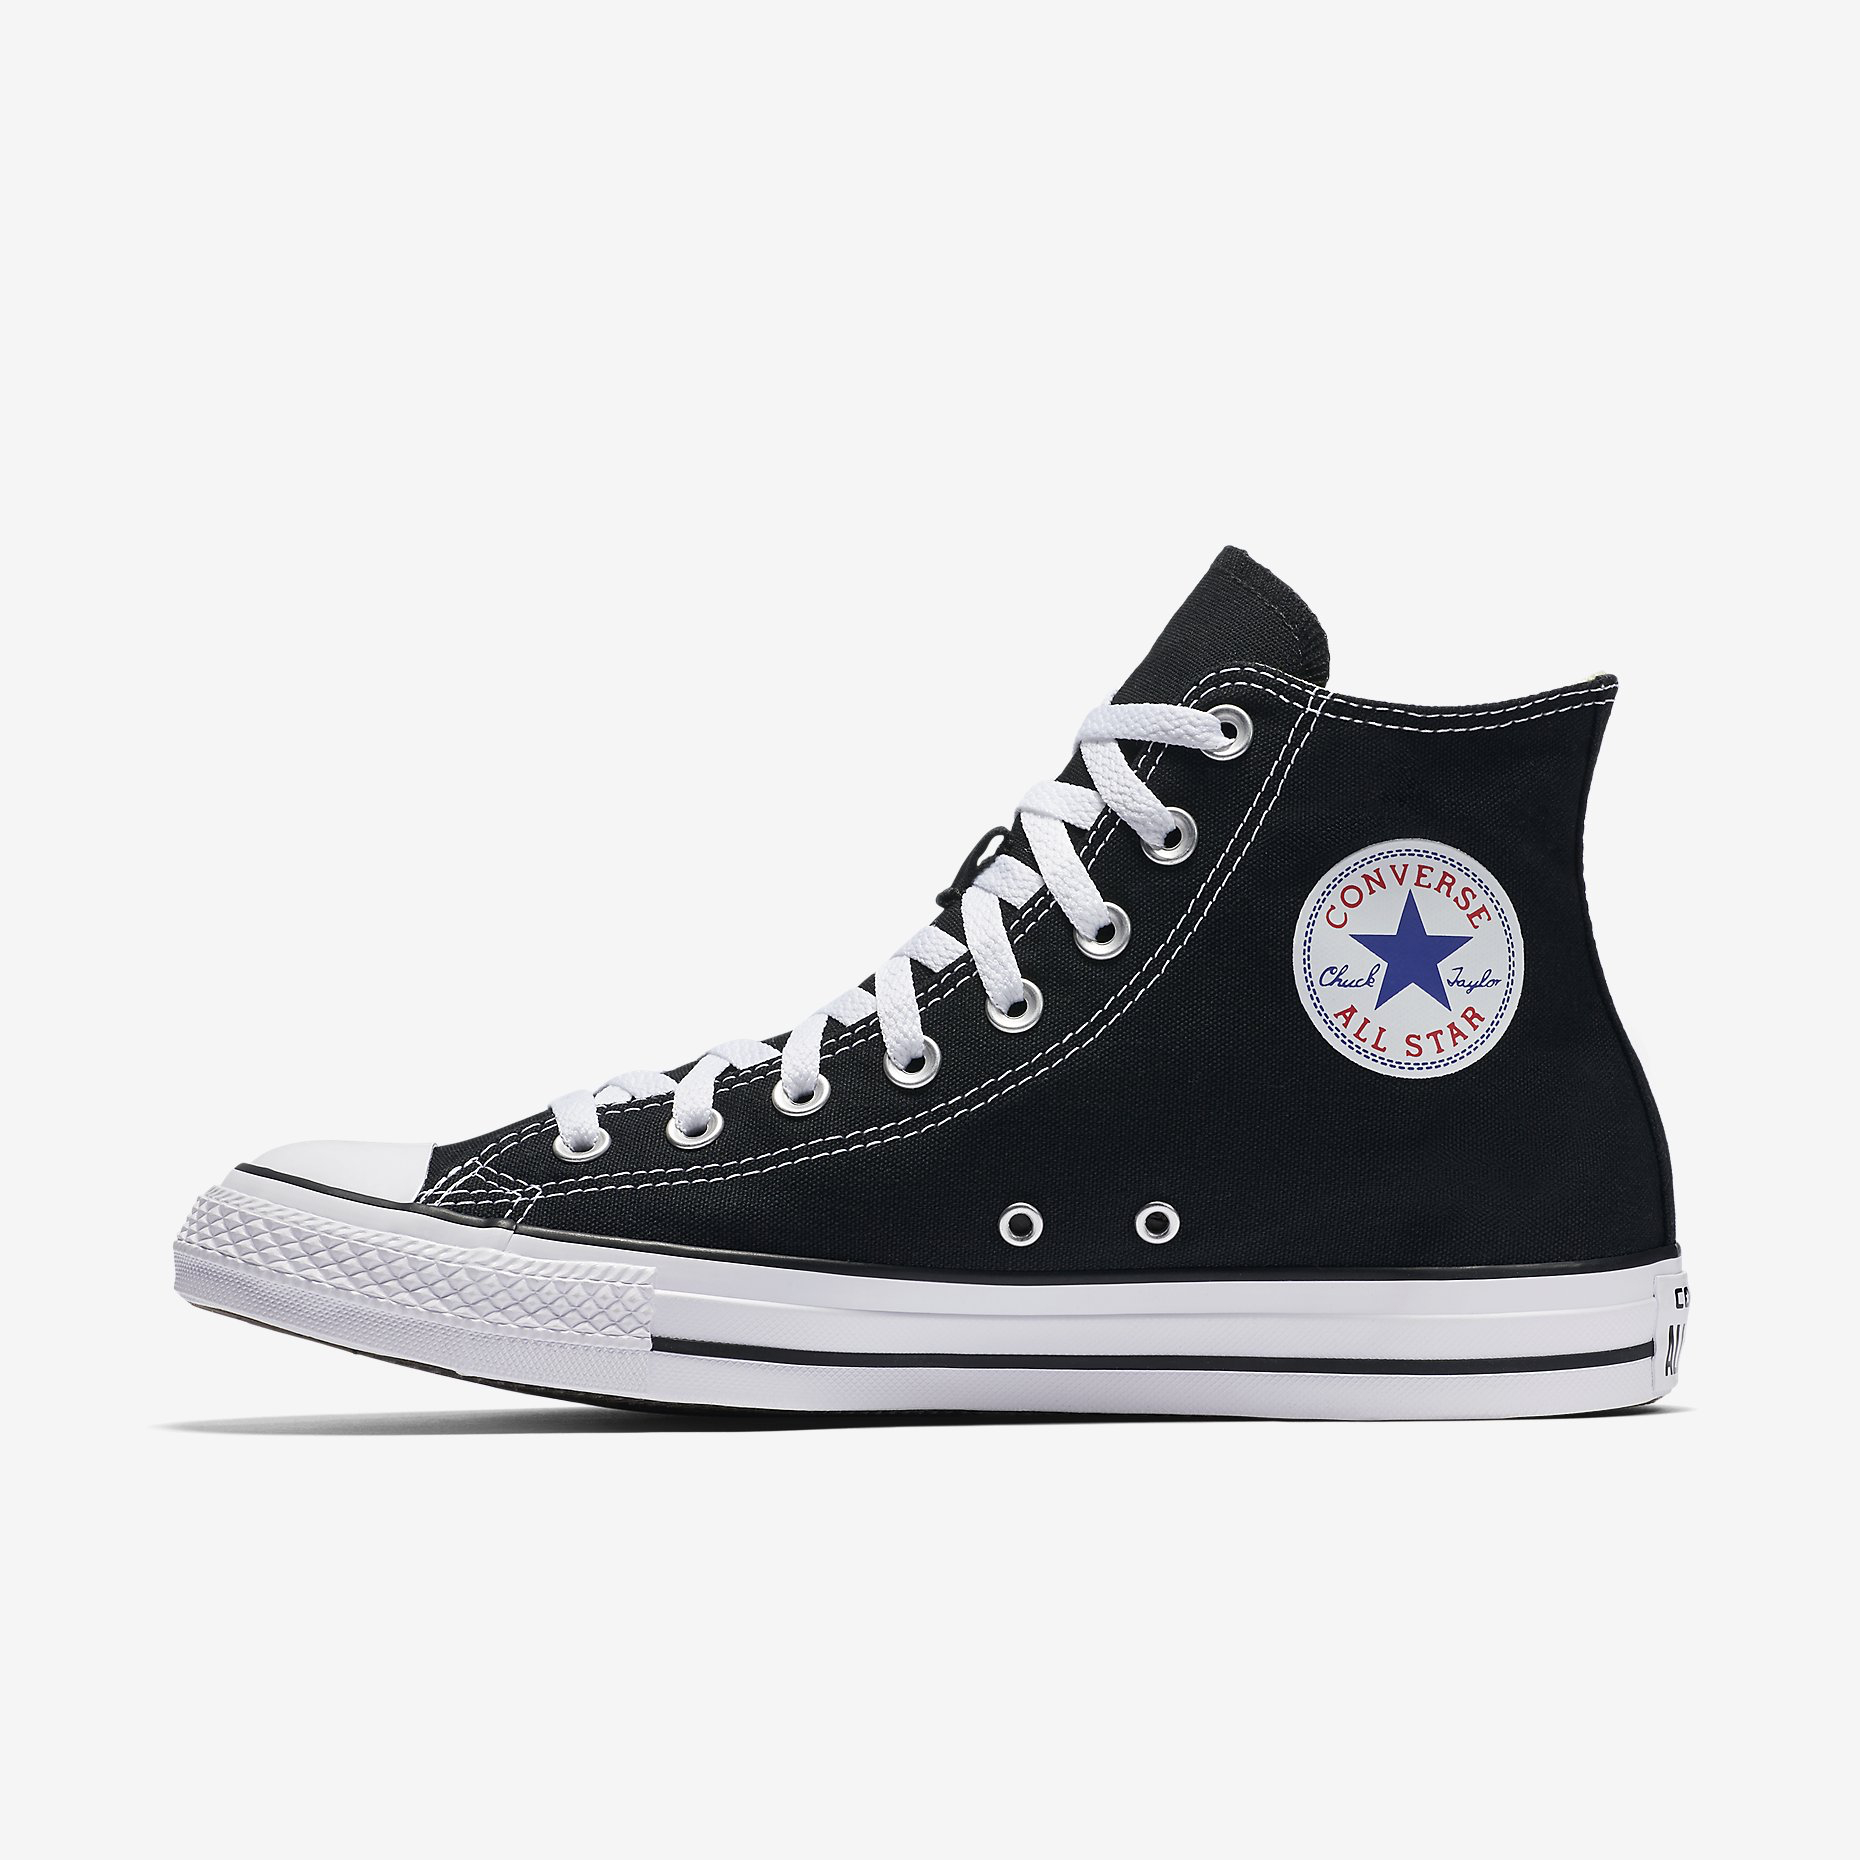 Converse Chuck Taylor All Star Womens High Top Black